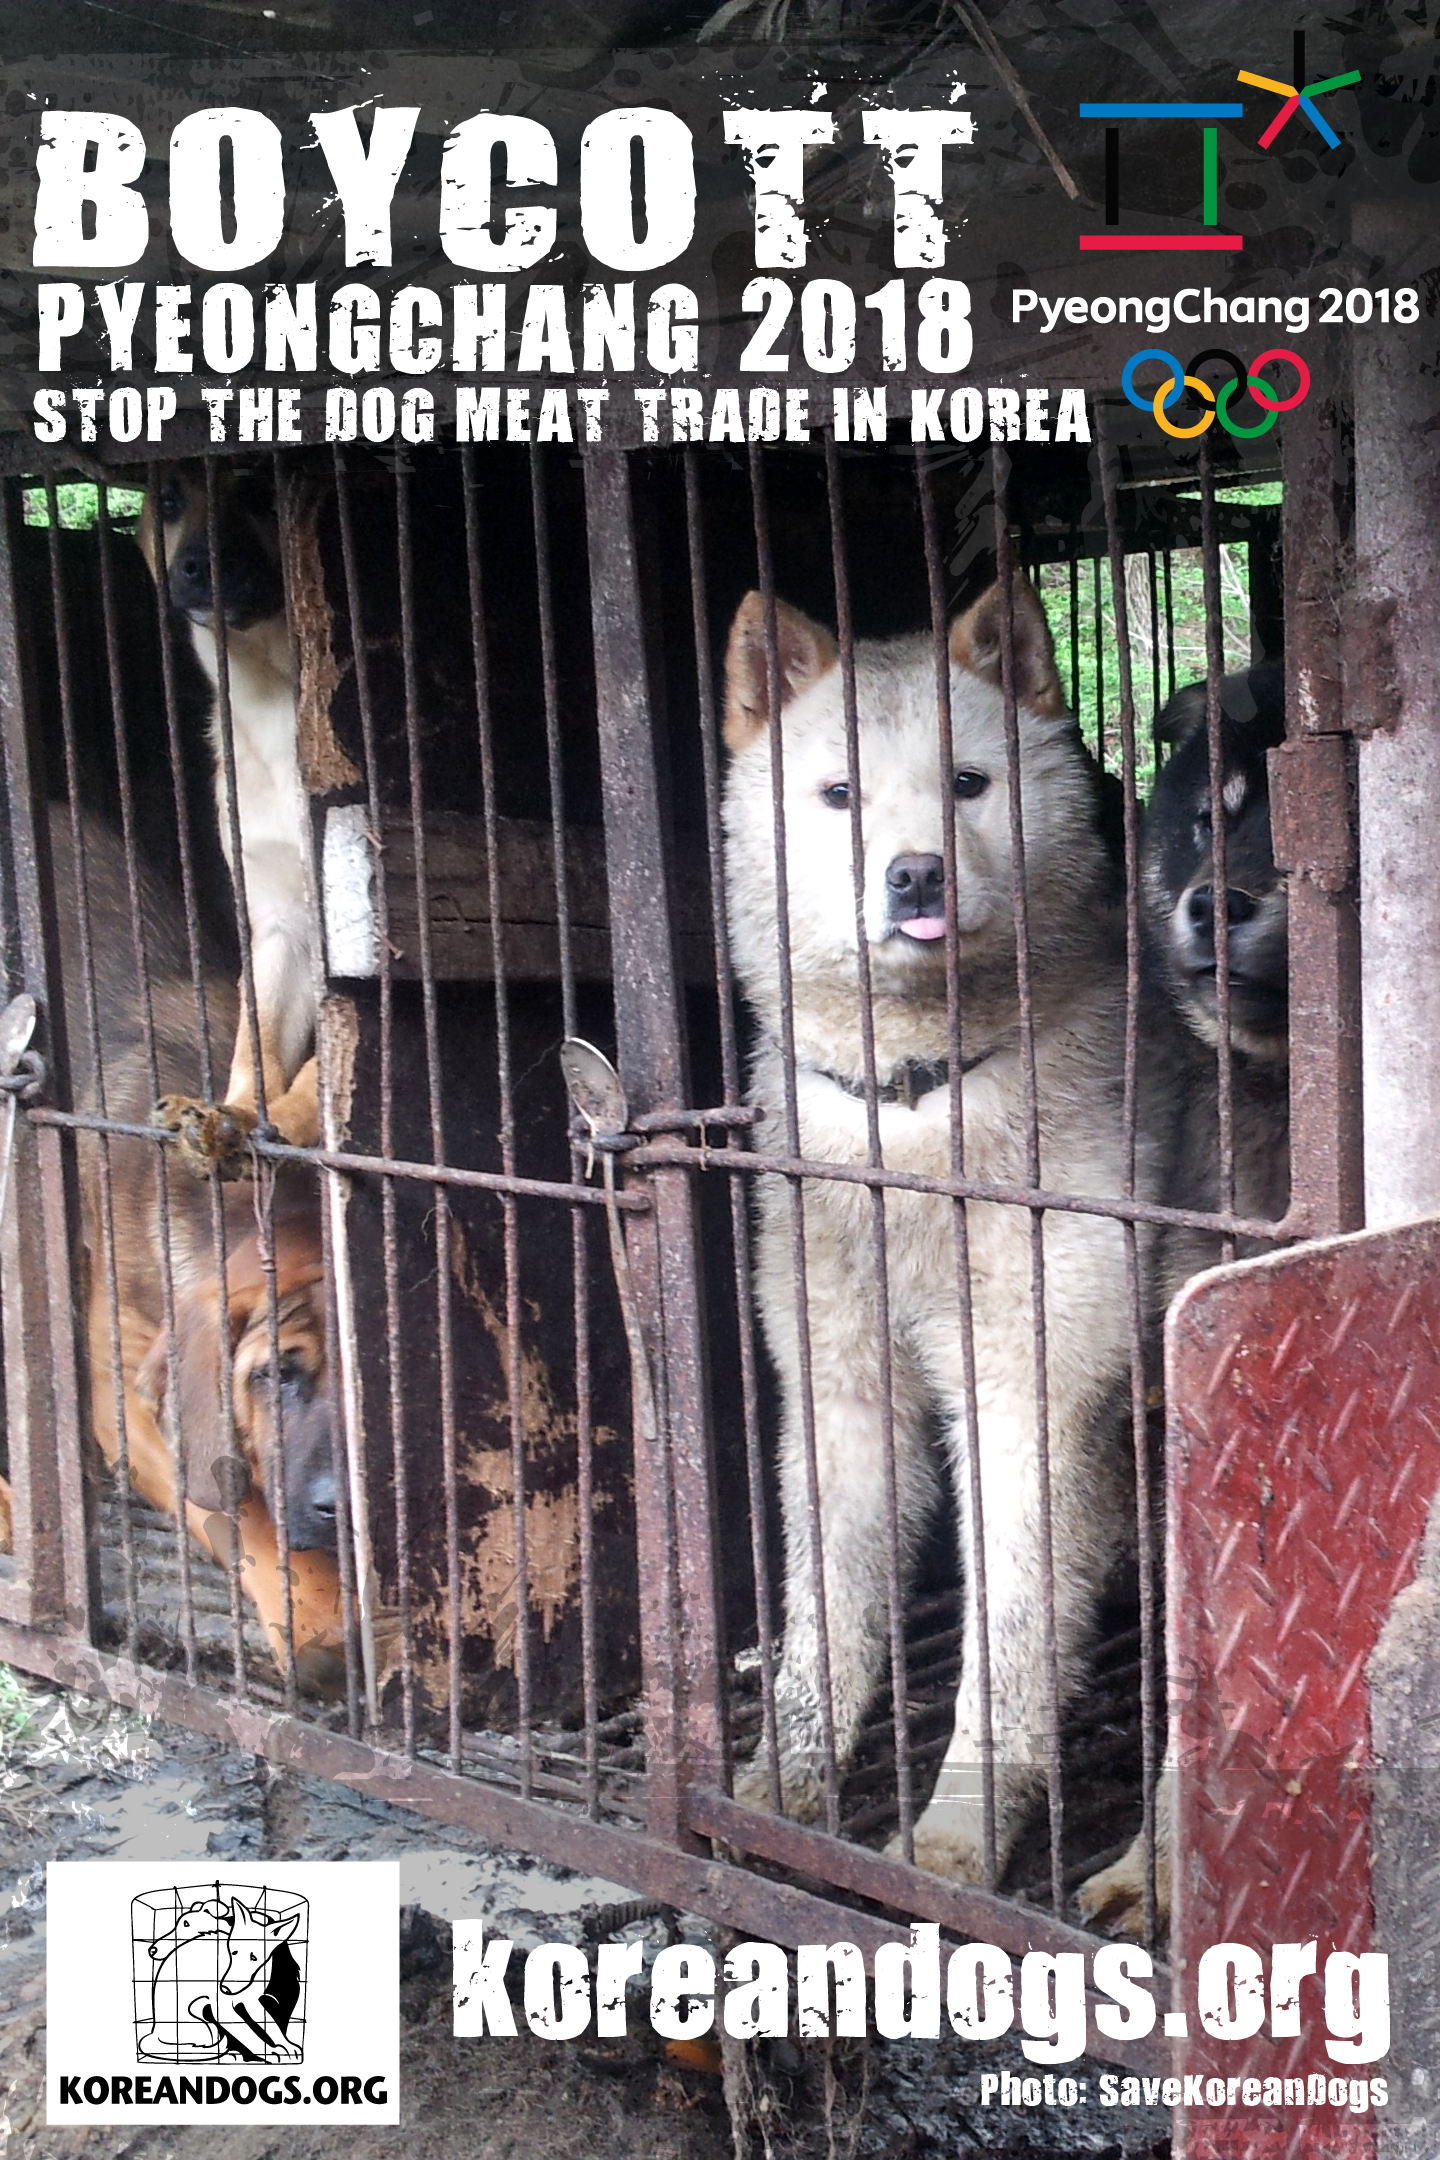 To the Sponsors of PyeongChang 2018 Winter Olympics in South Korea: please help bring an end to the dog and cat meat trades in South Korea